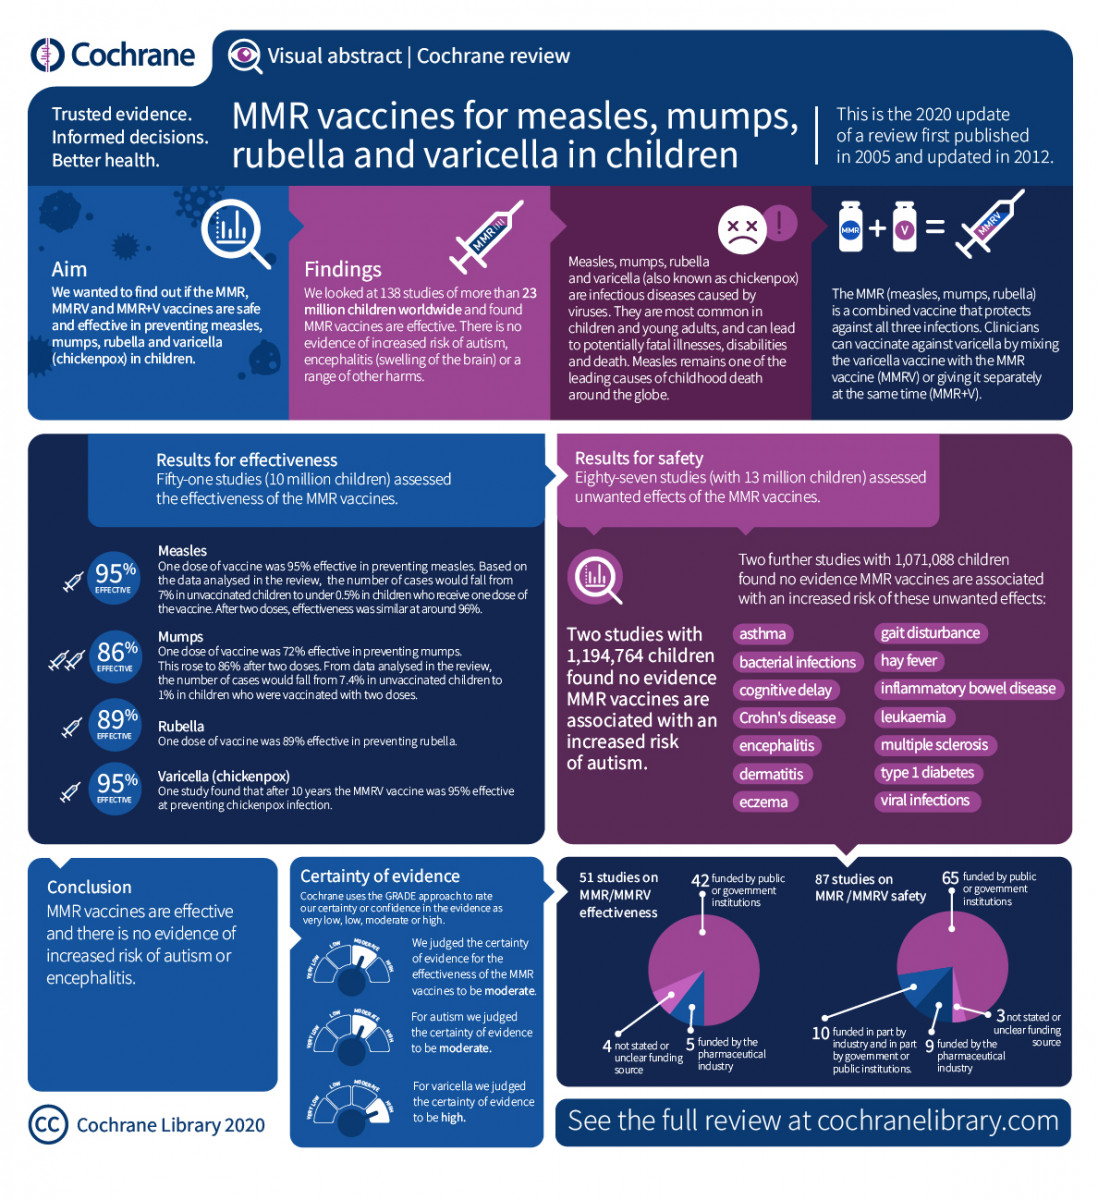 //www.cochrane.org/news/cochrane-review-confirms-effectiveness-mmr-vaccines